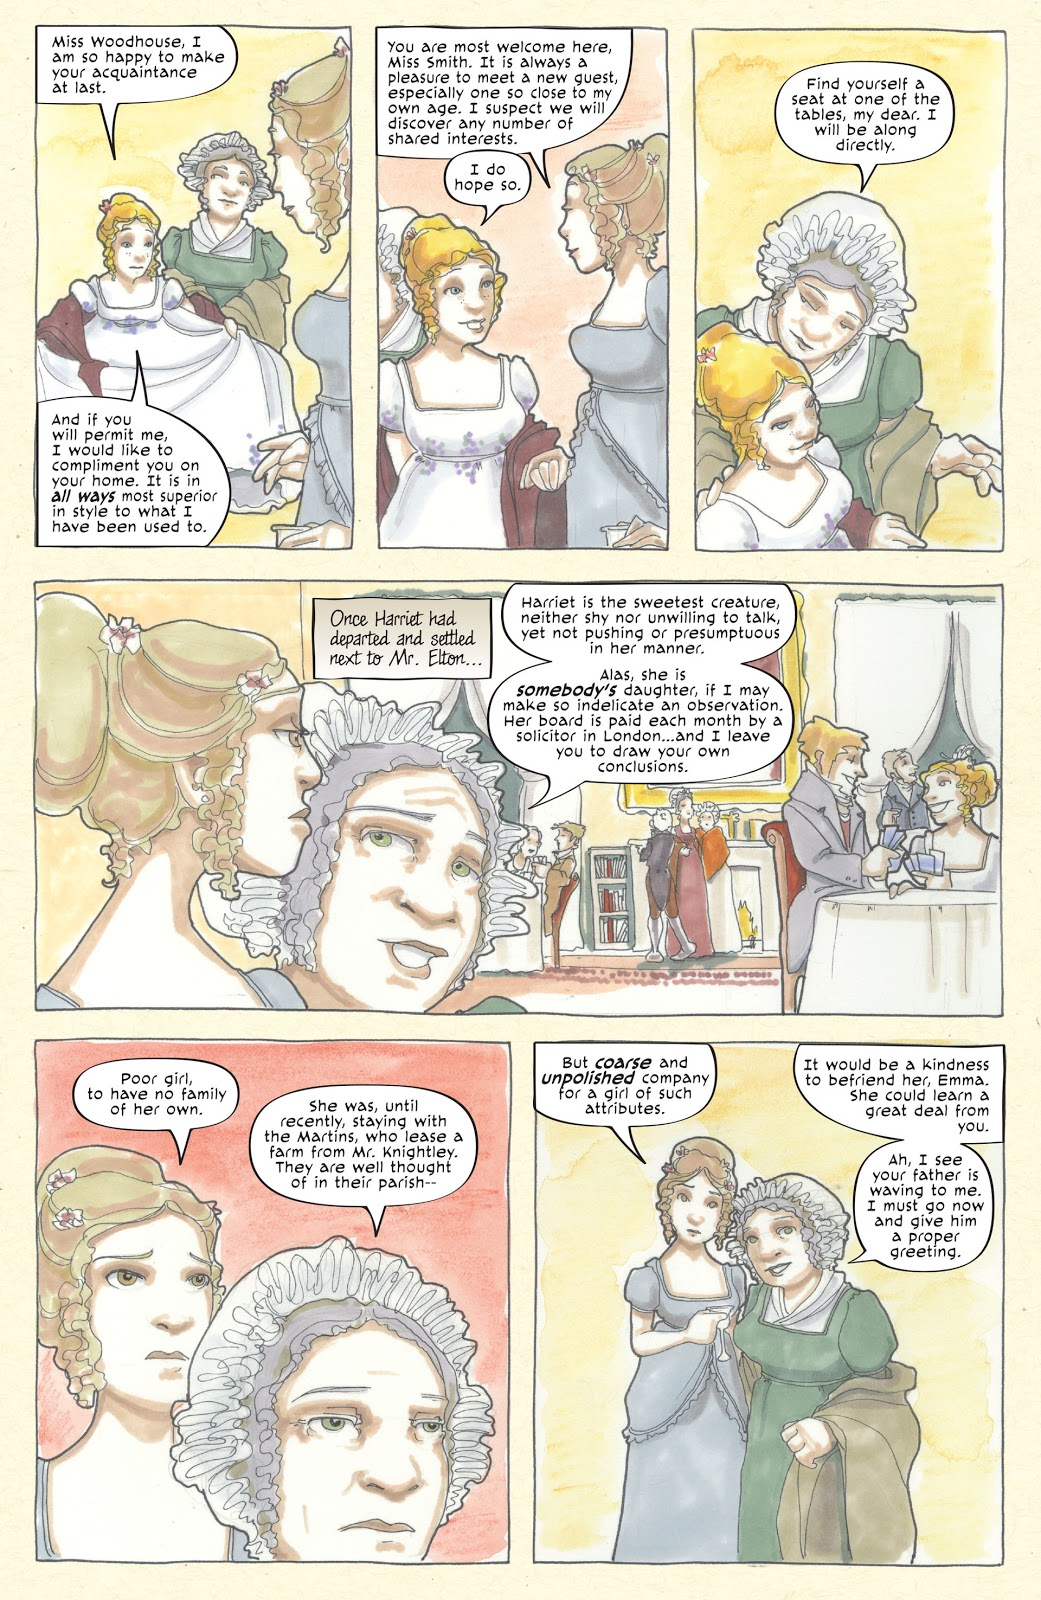 Emma graphic novel review